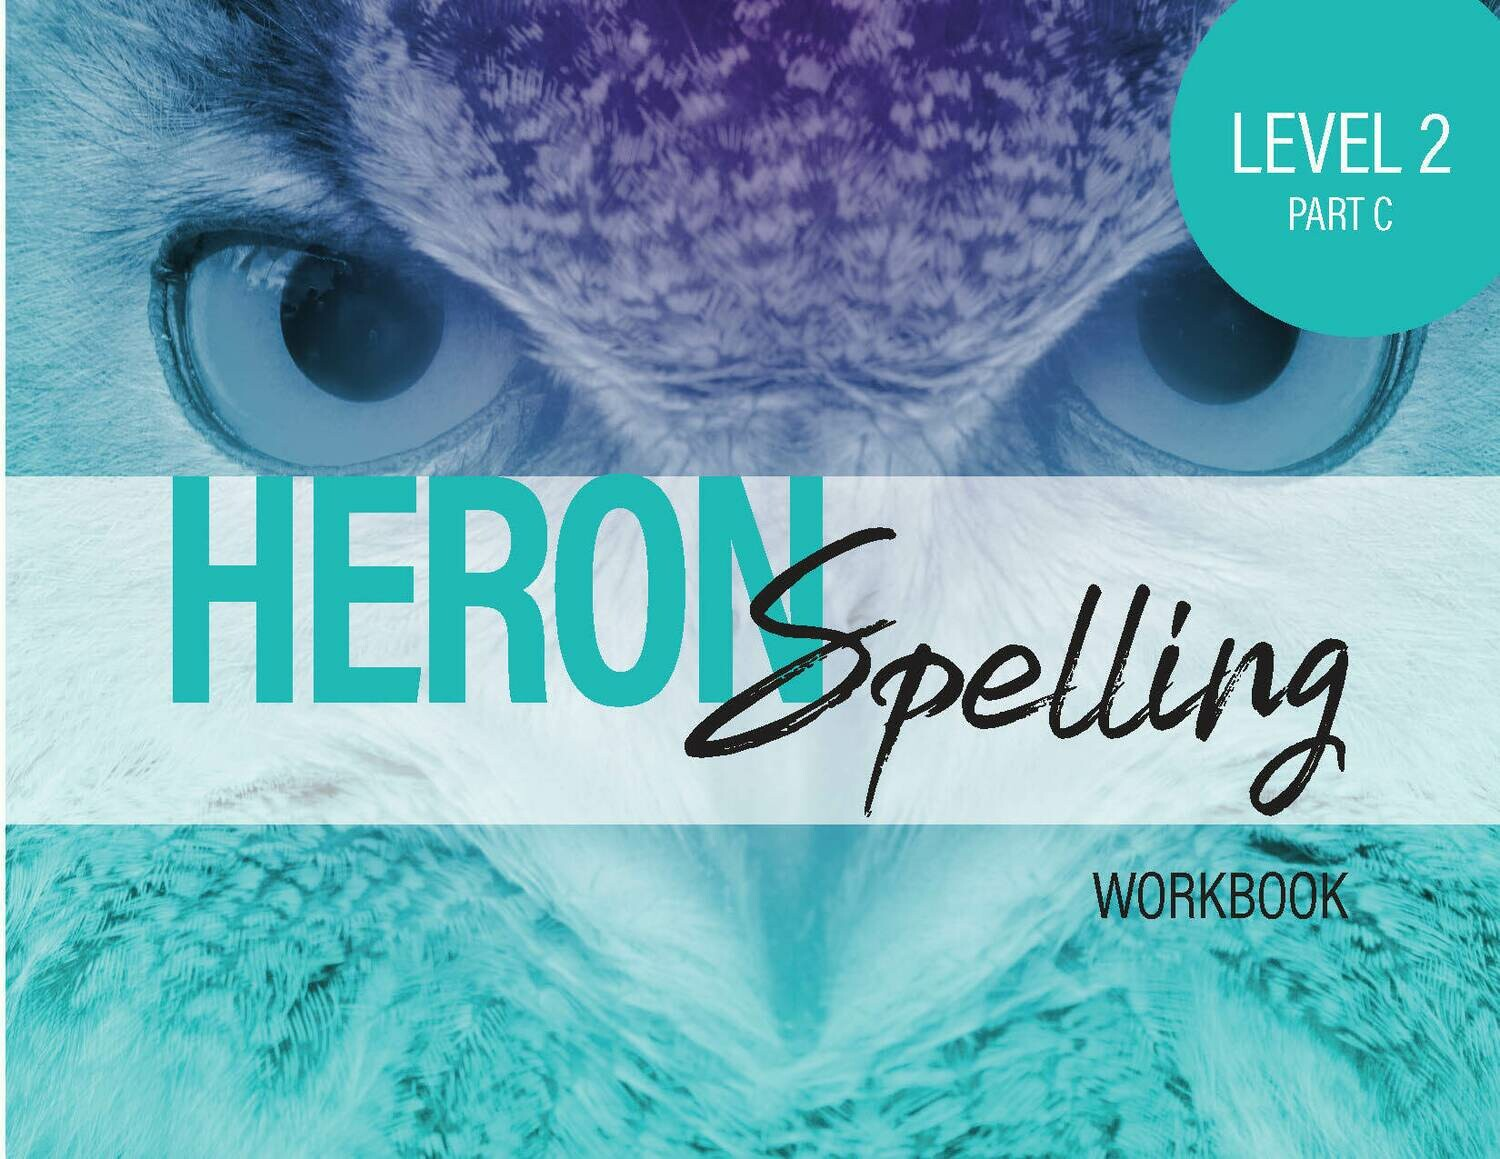 Heron Spelling Level 2C Workbook